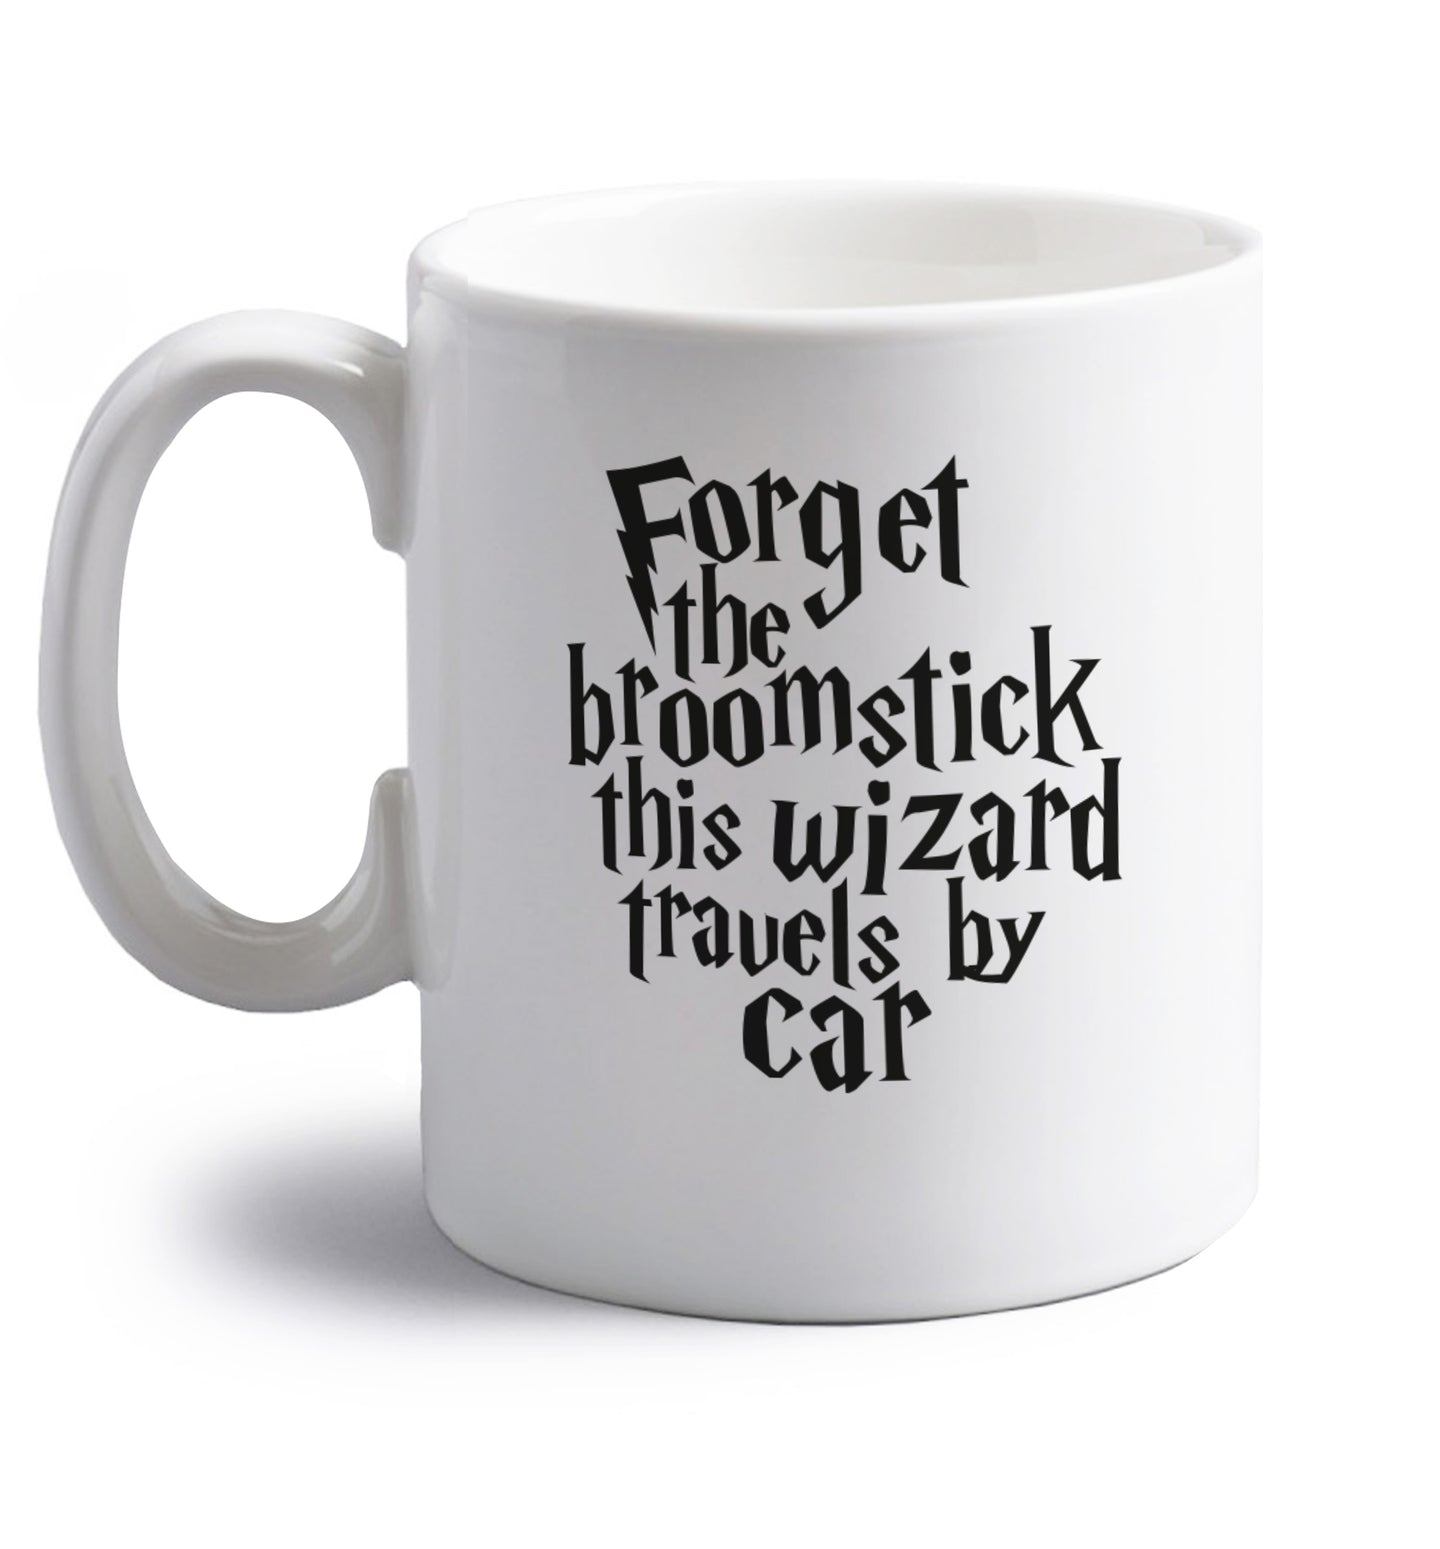 Forget the broomstick this wizard travels by car right handed white ceramic mug